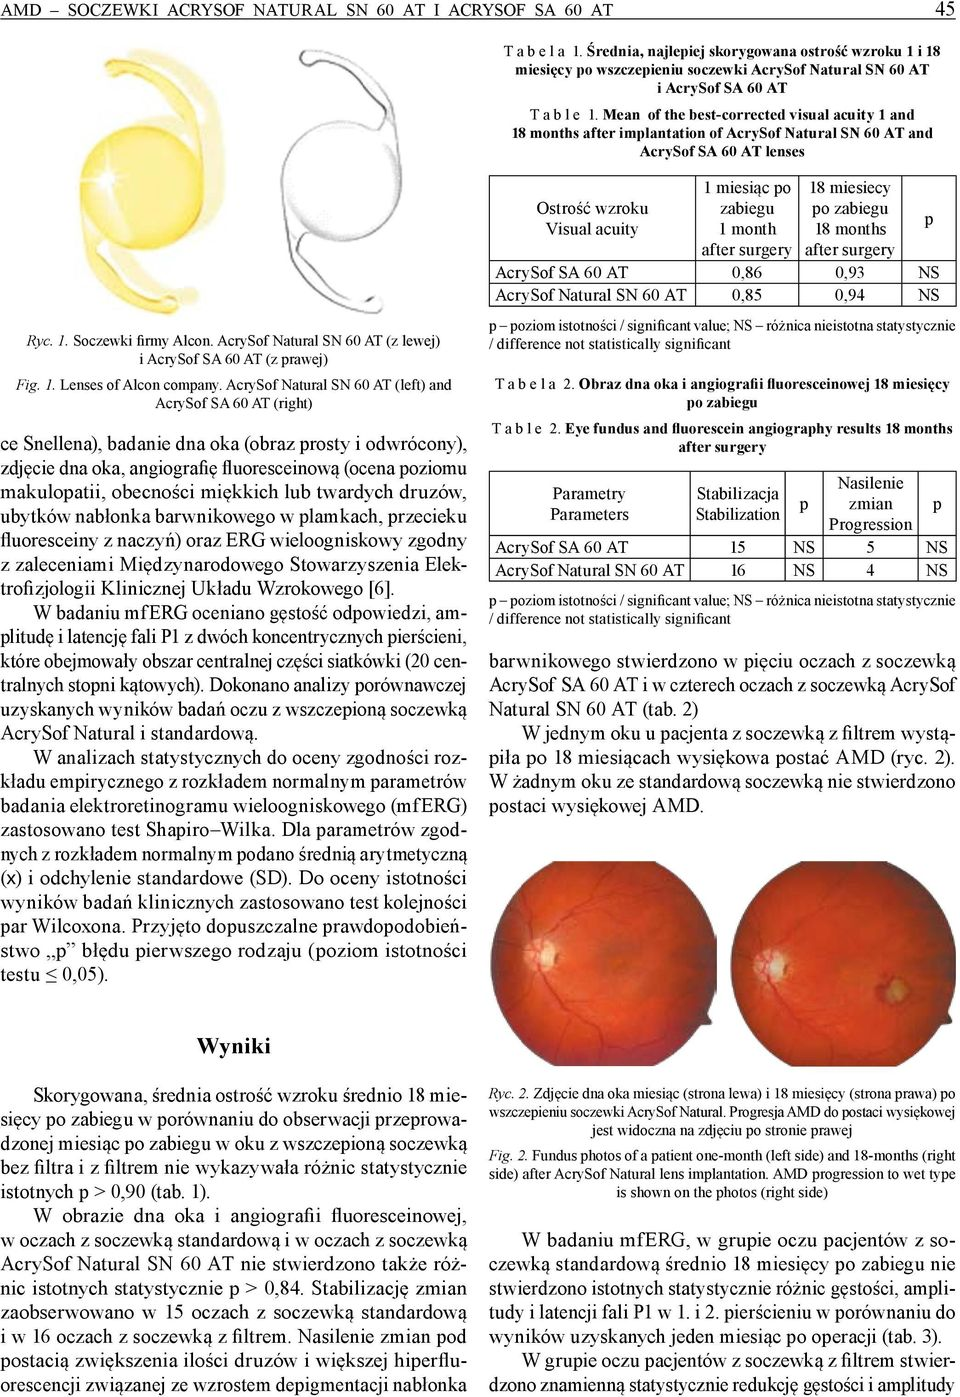 Mean of the best-corrected visual acuity 1 and 18 months after implantation of AcrySof Natural SN 60 AT and AcrySof SA 60 AT lenses Ryc. 1. Soczewki firmy Alcon.